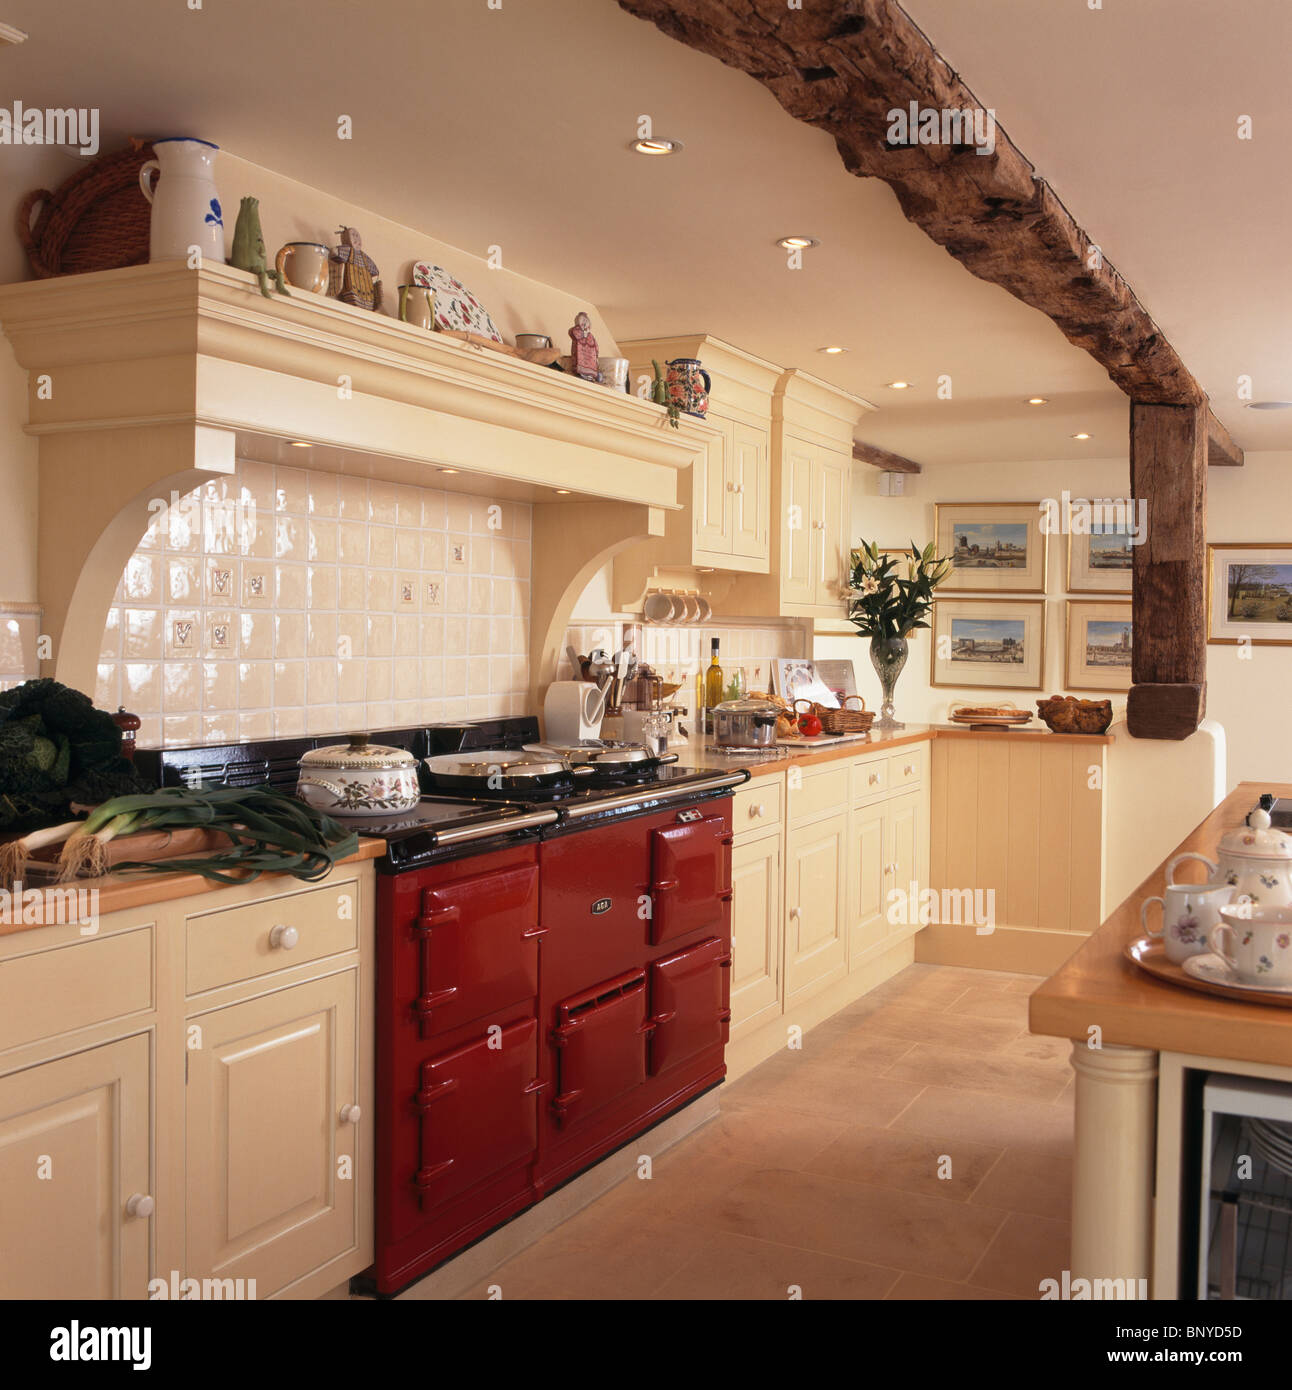 Red Aga Oven In Cream Country Kitchen With Large Rustic Wooden Ceiling Beam